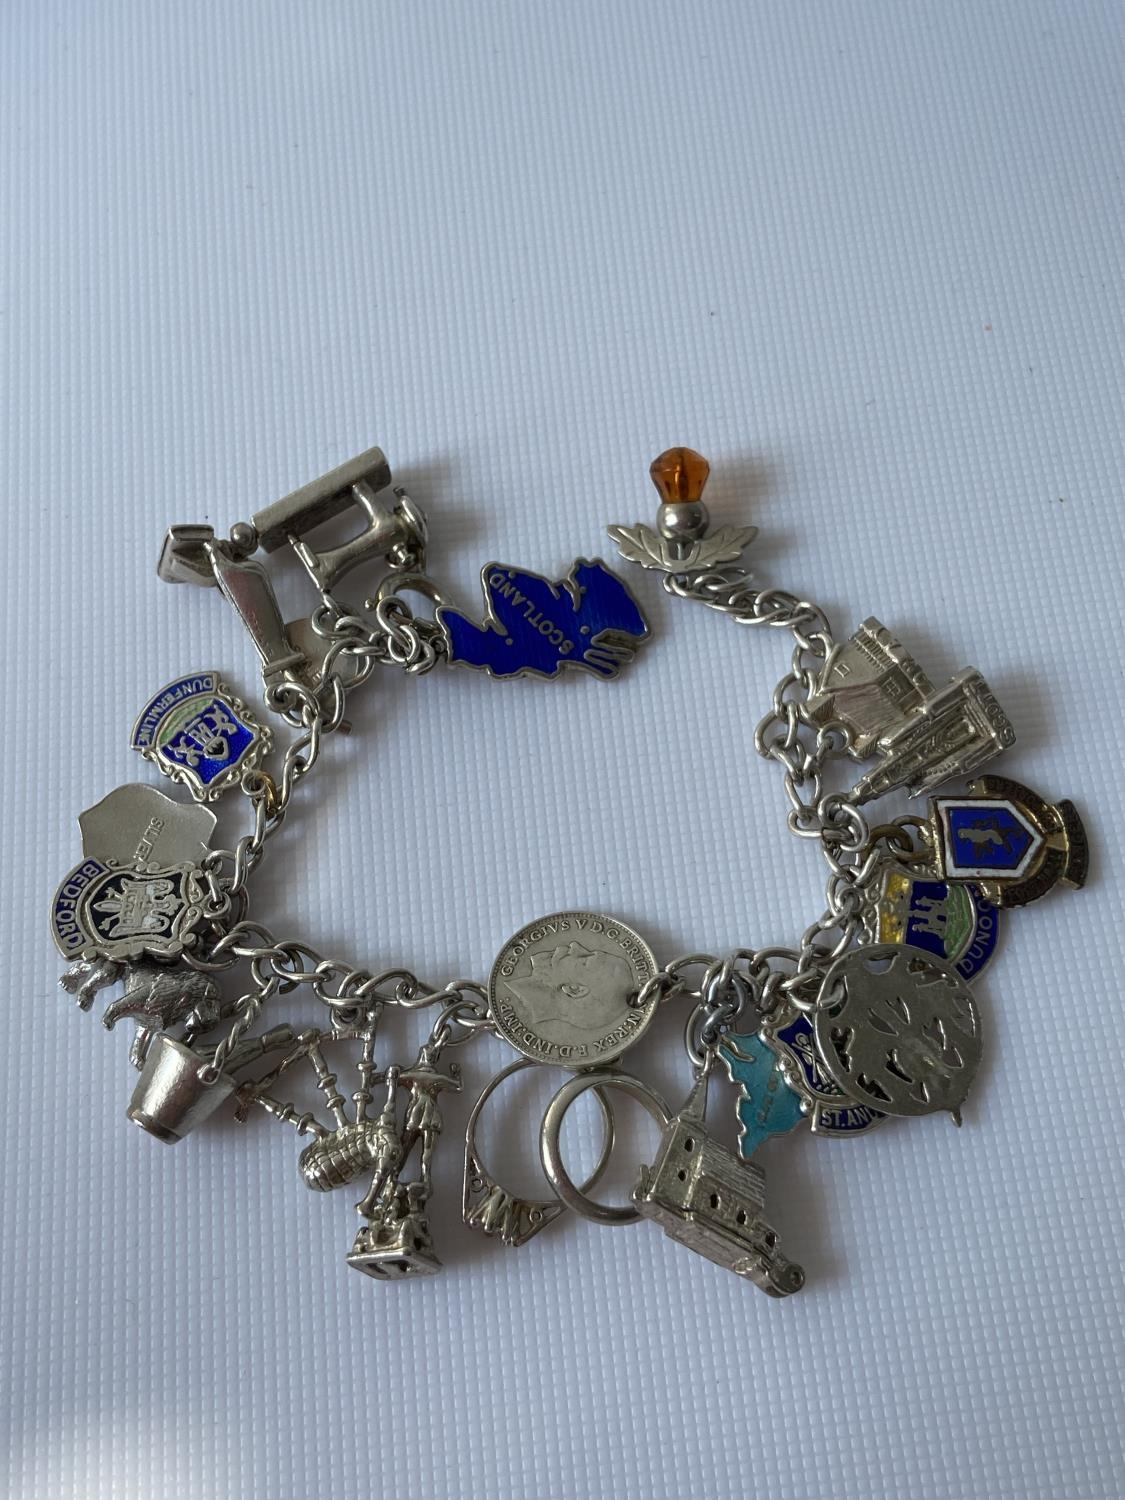 A silver charm bracelet fitted with 23 various silver chains, includes silver & enamel charms [